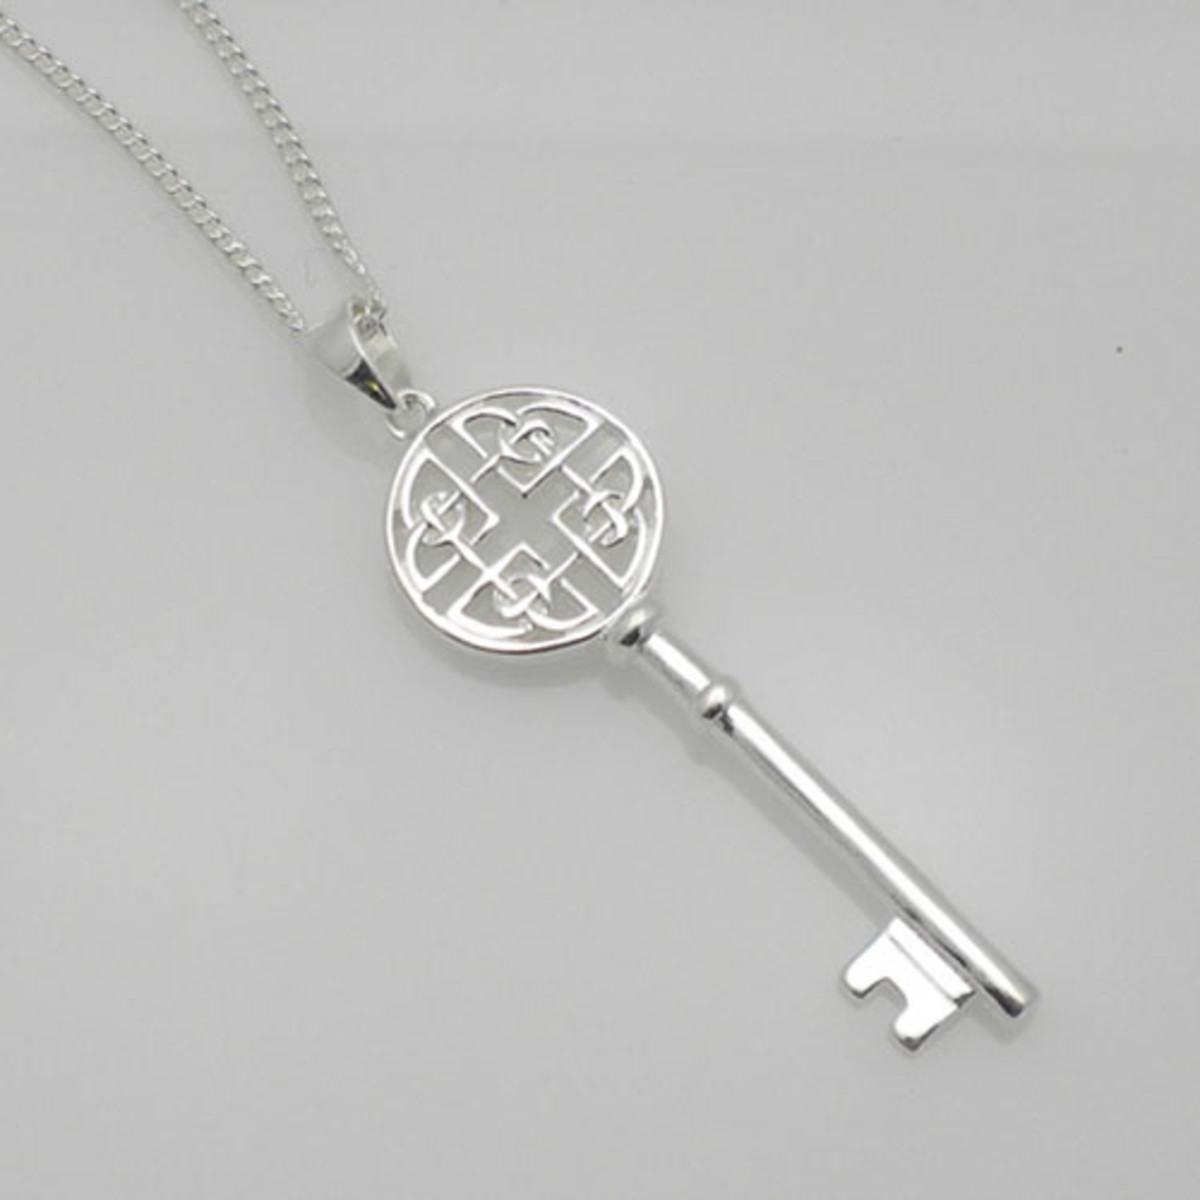 Celtic styled key and chain - Celtic ladies were entrusted with the household in the same way as the Norse women